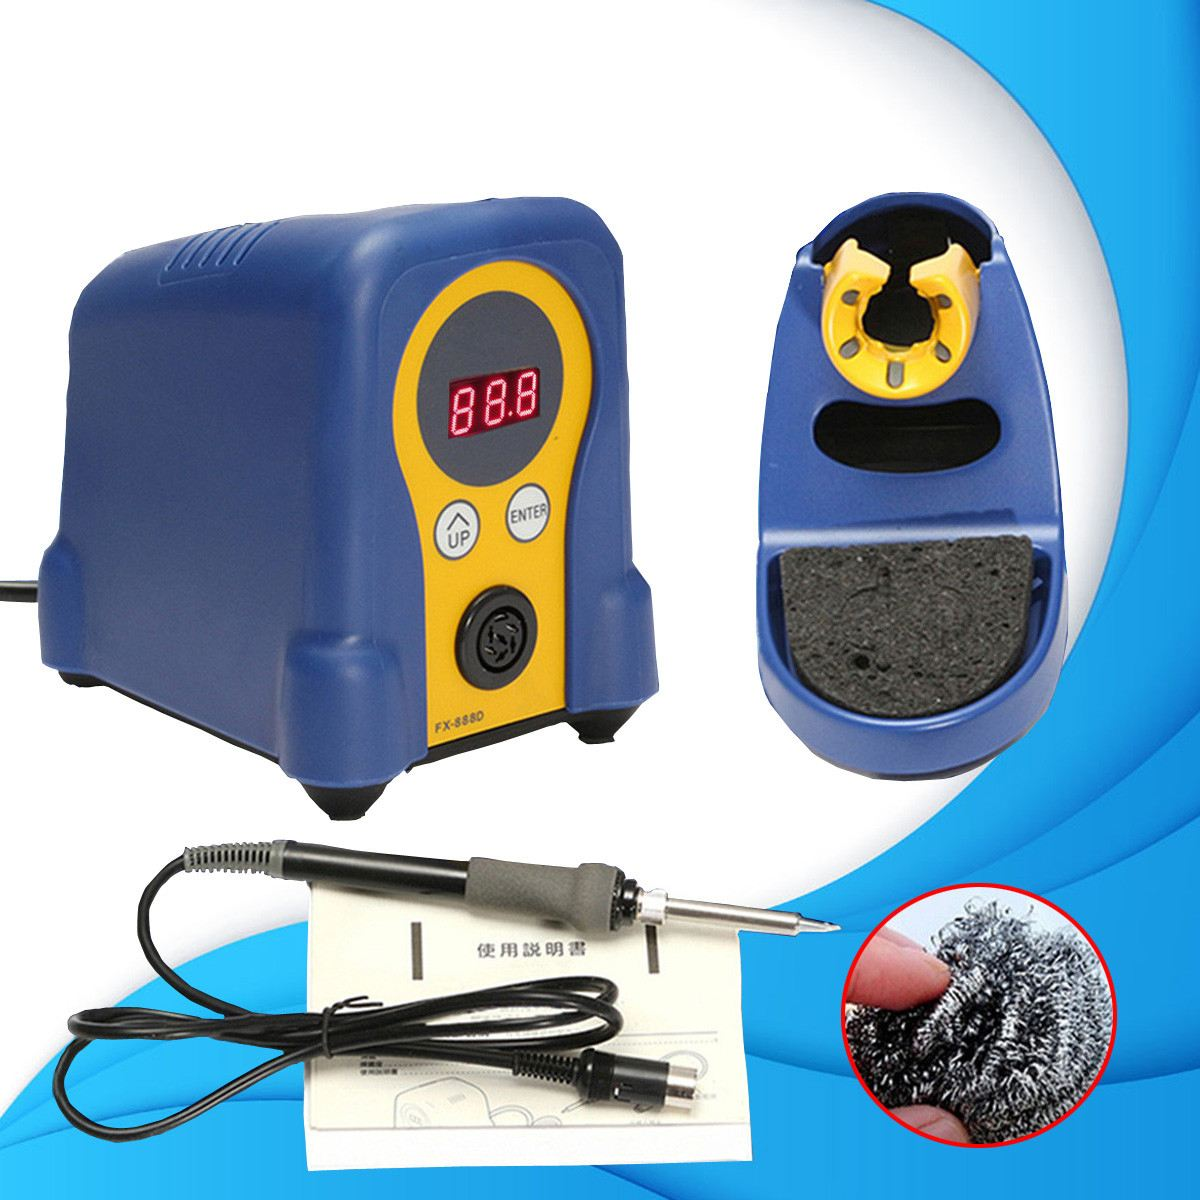 Digital Display Soldering Station Iron With Stand Repair Tool 70W 220V Adjustable Temperature Control Durable Quality digital indoor air quality carbon dioxide meter temperature rh humidity twa stel display 99 points made in taiwan co2 monitor